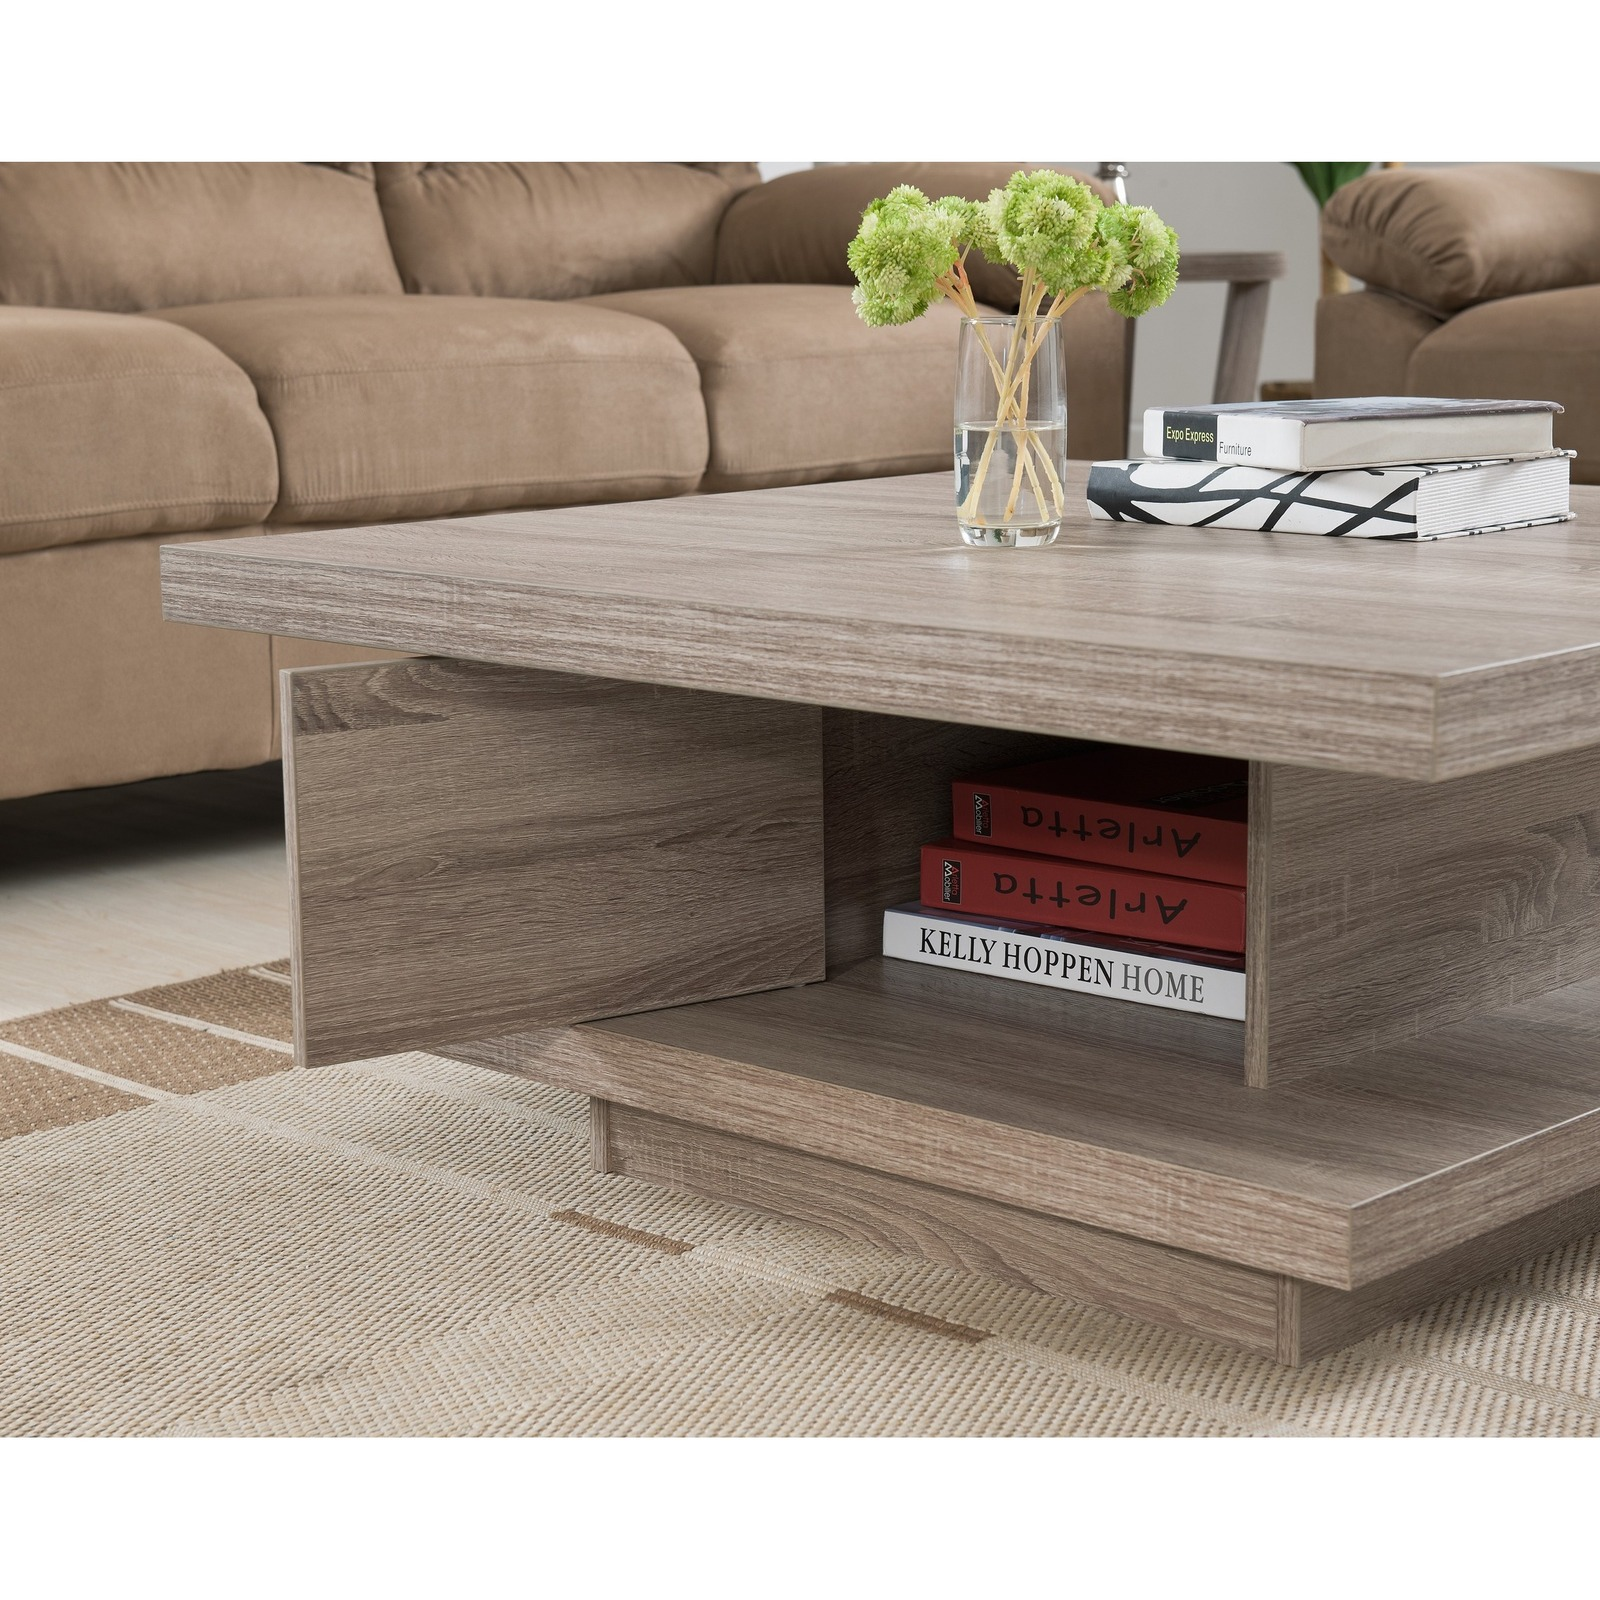 The Most Inspired Unique Contemporary Coffee Tables Ideas: Contemporary Modern Wood Coffee Tables Unique Square Style